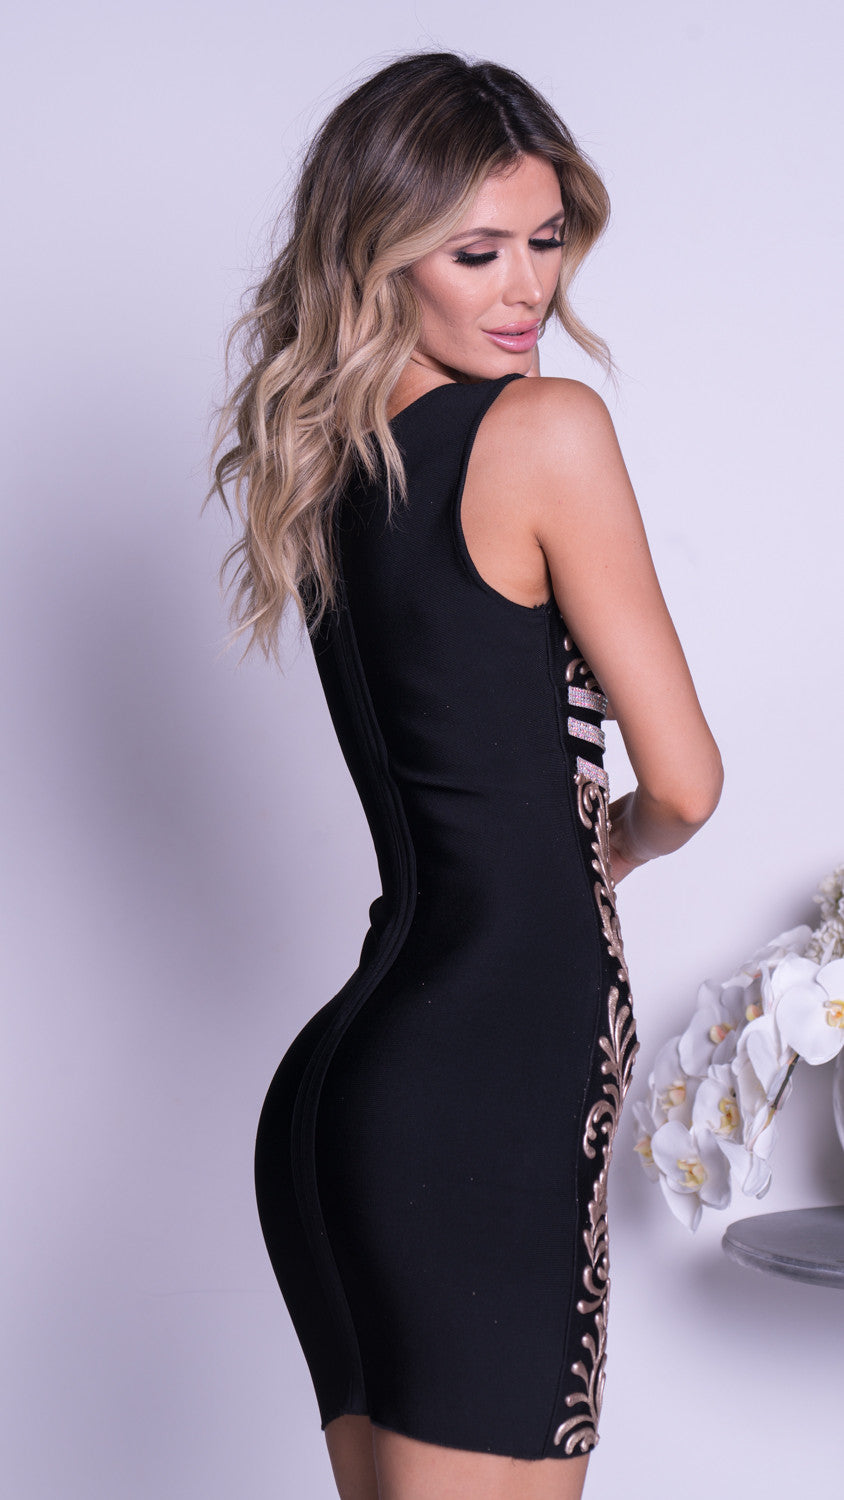 OLYA PAINTED BANDAGE DRESS IN BLACK WITH GOLD